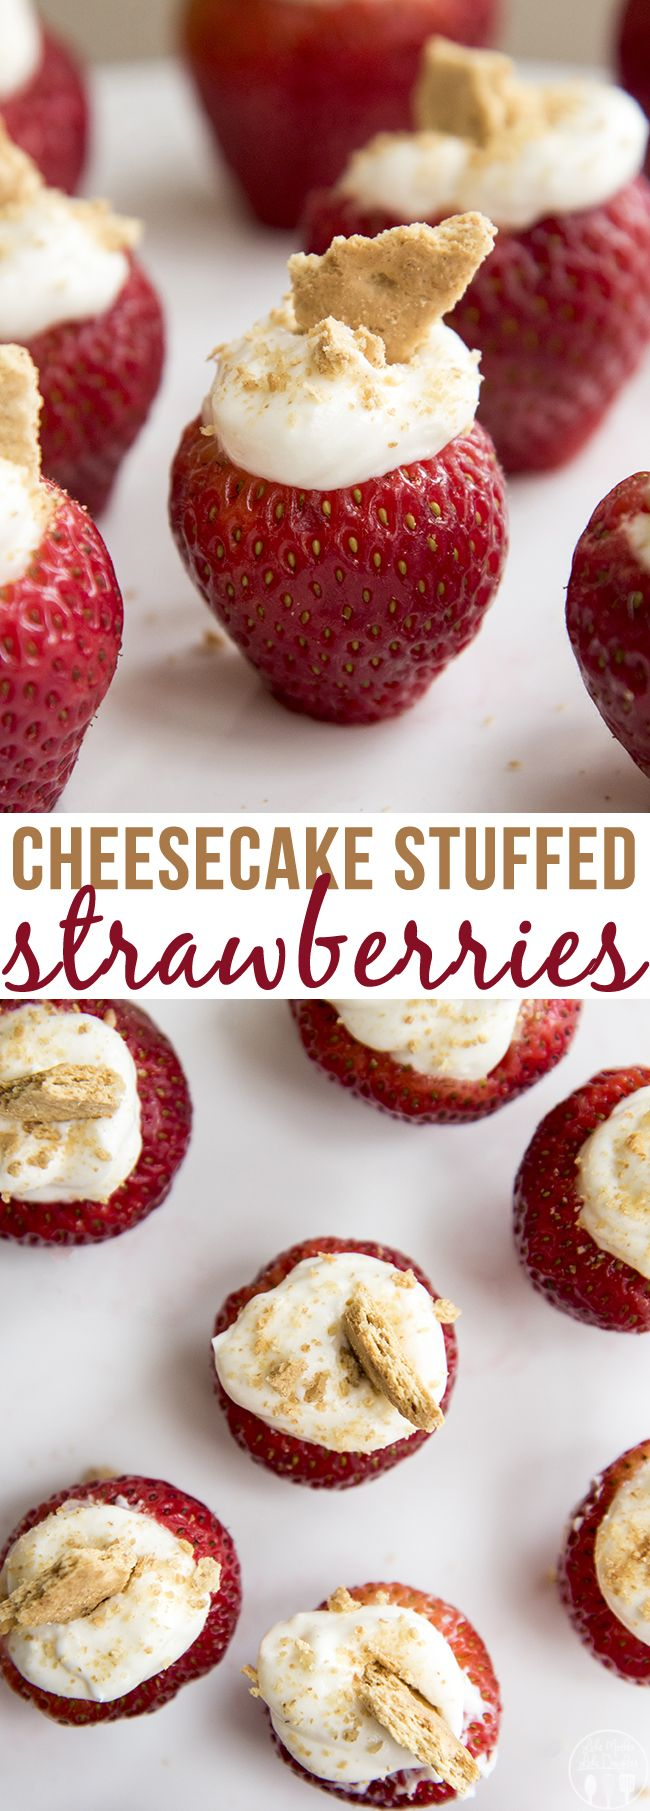 Cheesecake Stuffed Strawberries - Delicious no bake cheesecake filling stuffed inside of strawberries and topped with graham cracker crumbs make these a perfect summer dessert!